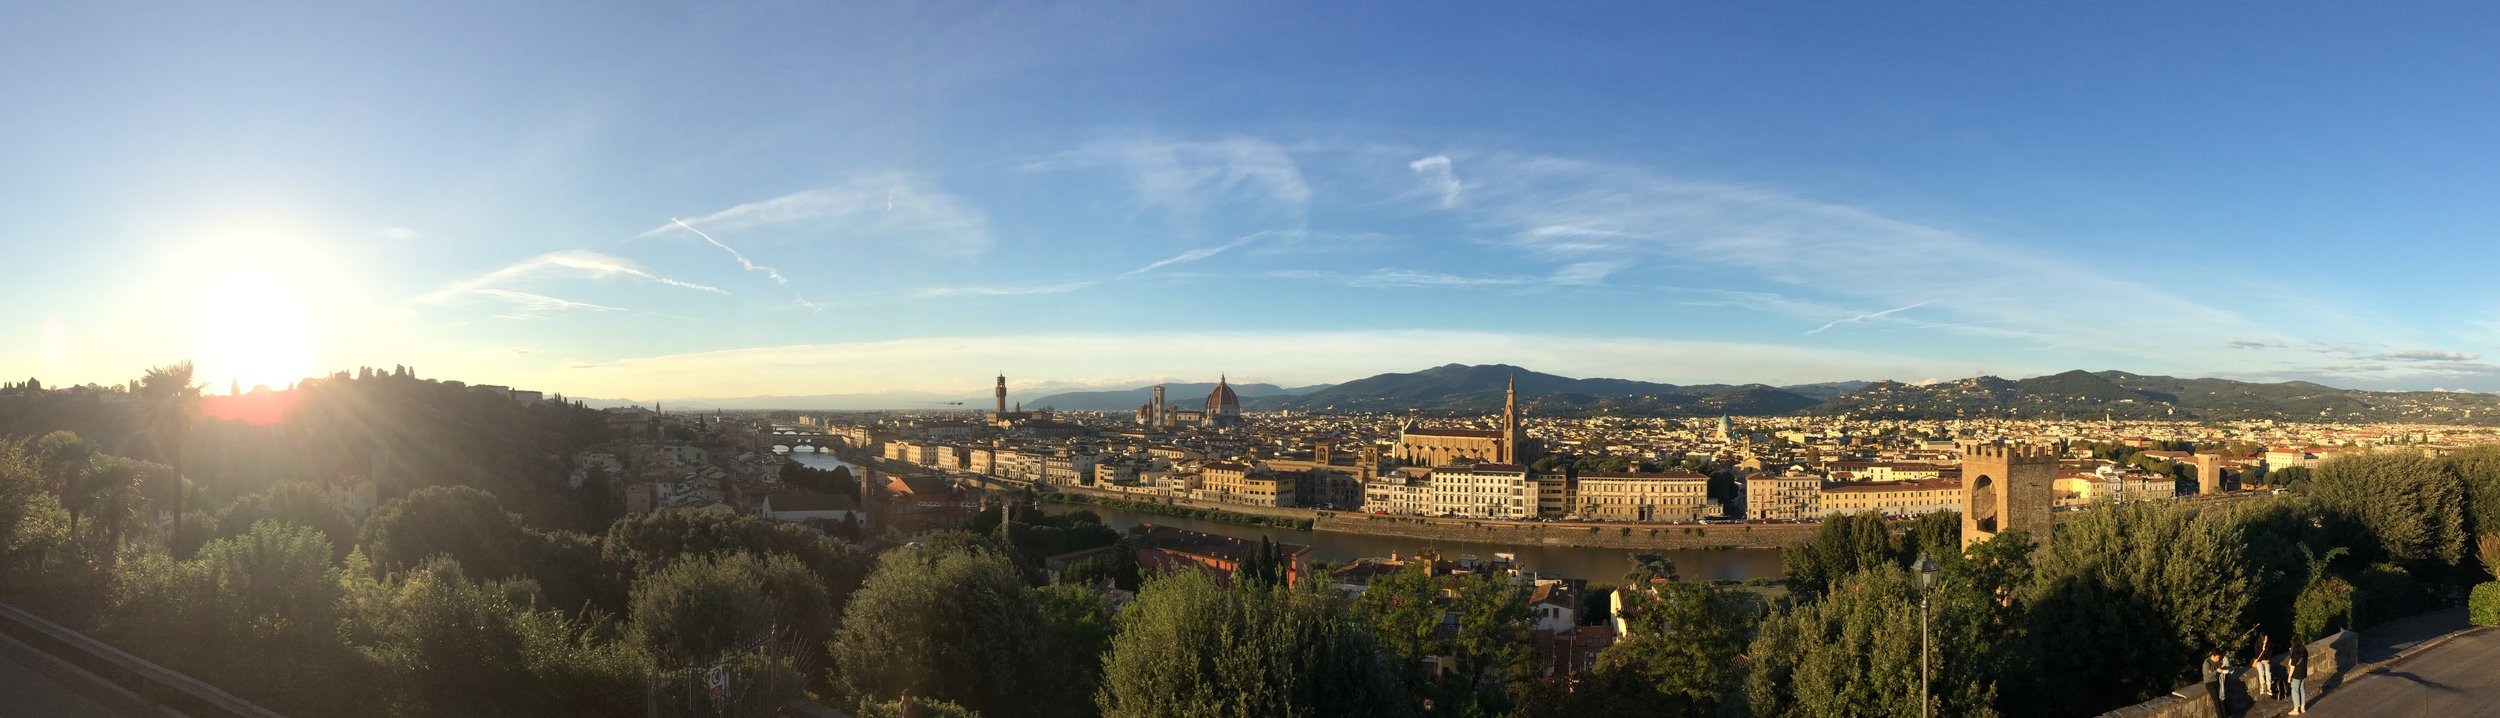 Florence seen from Piazza San Michelangelo - photo by Paul Hart, October 2018